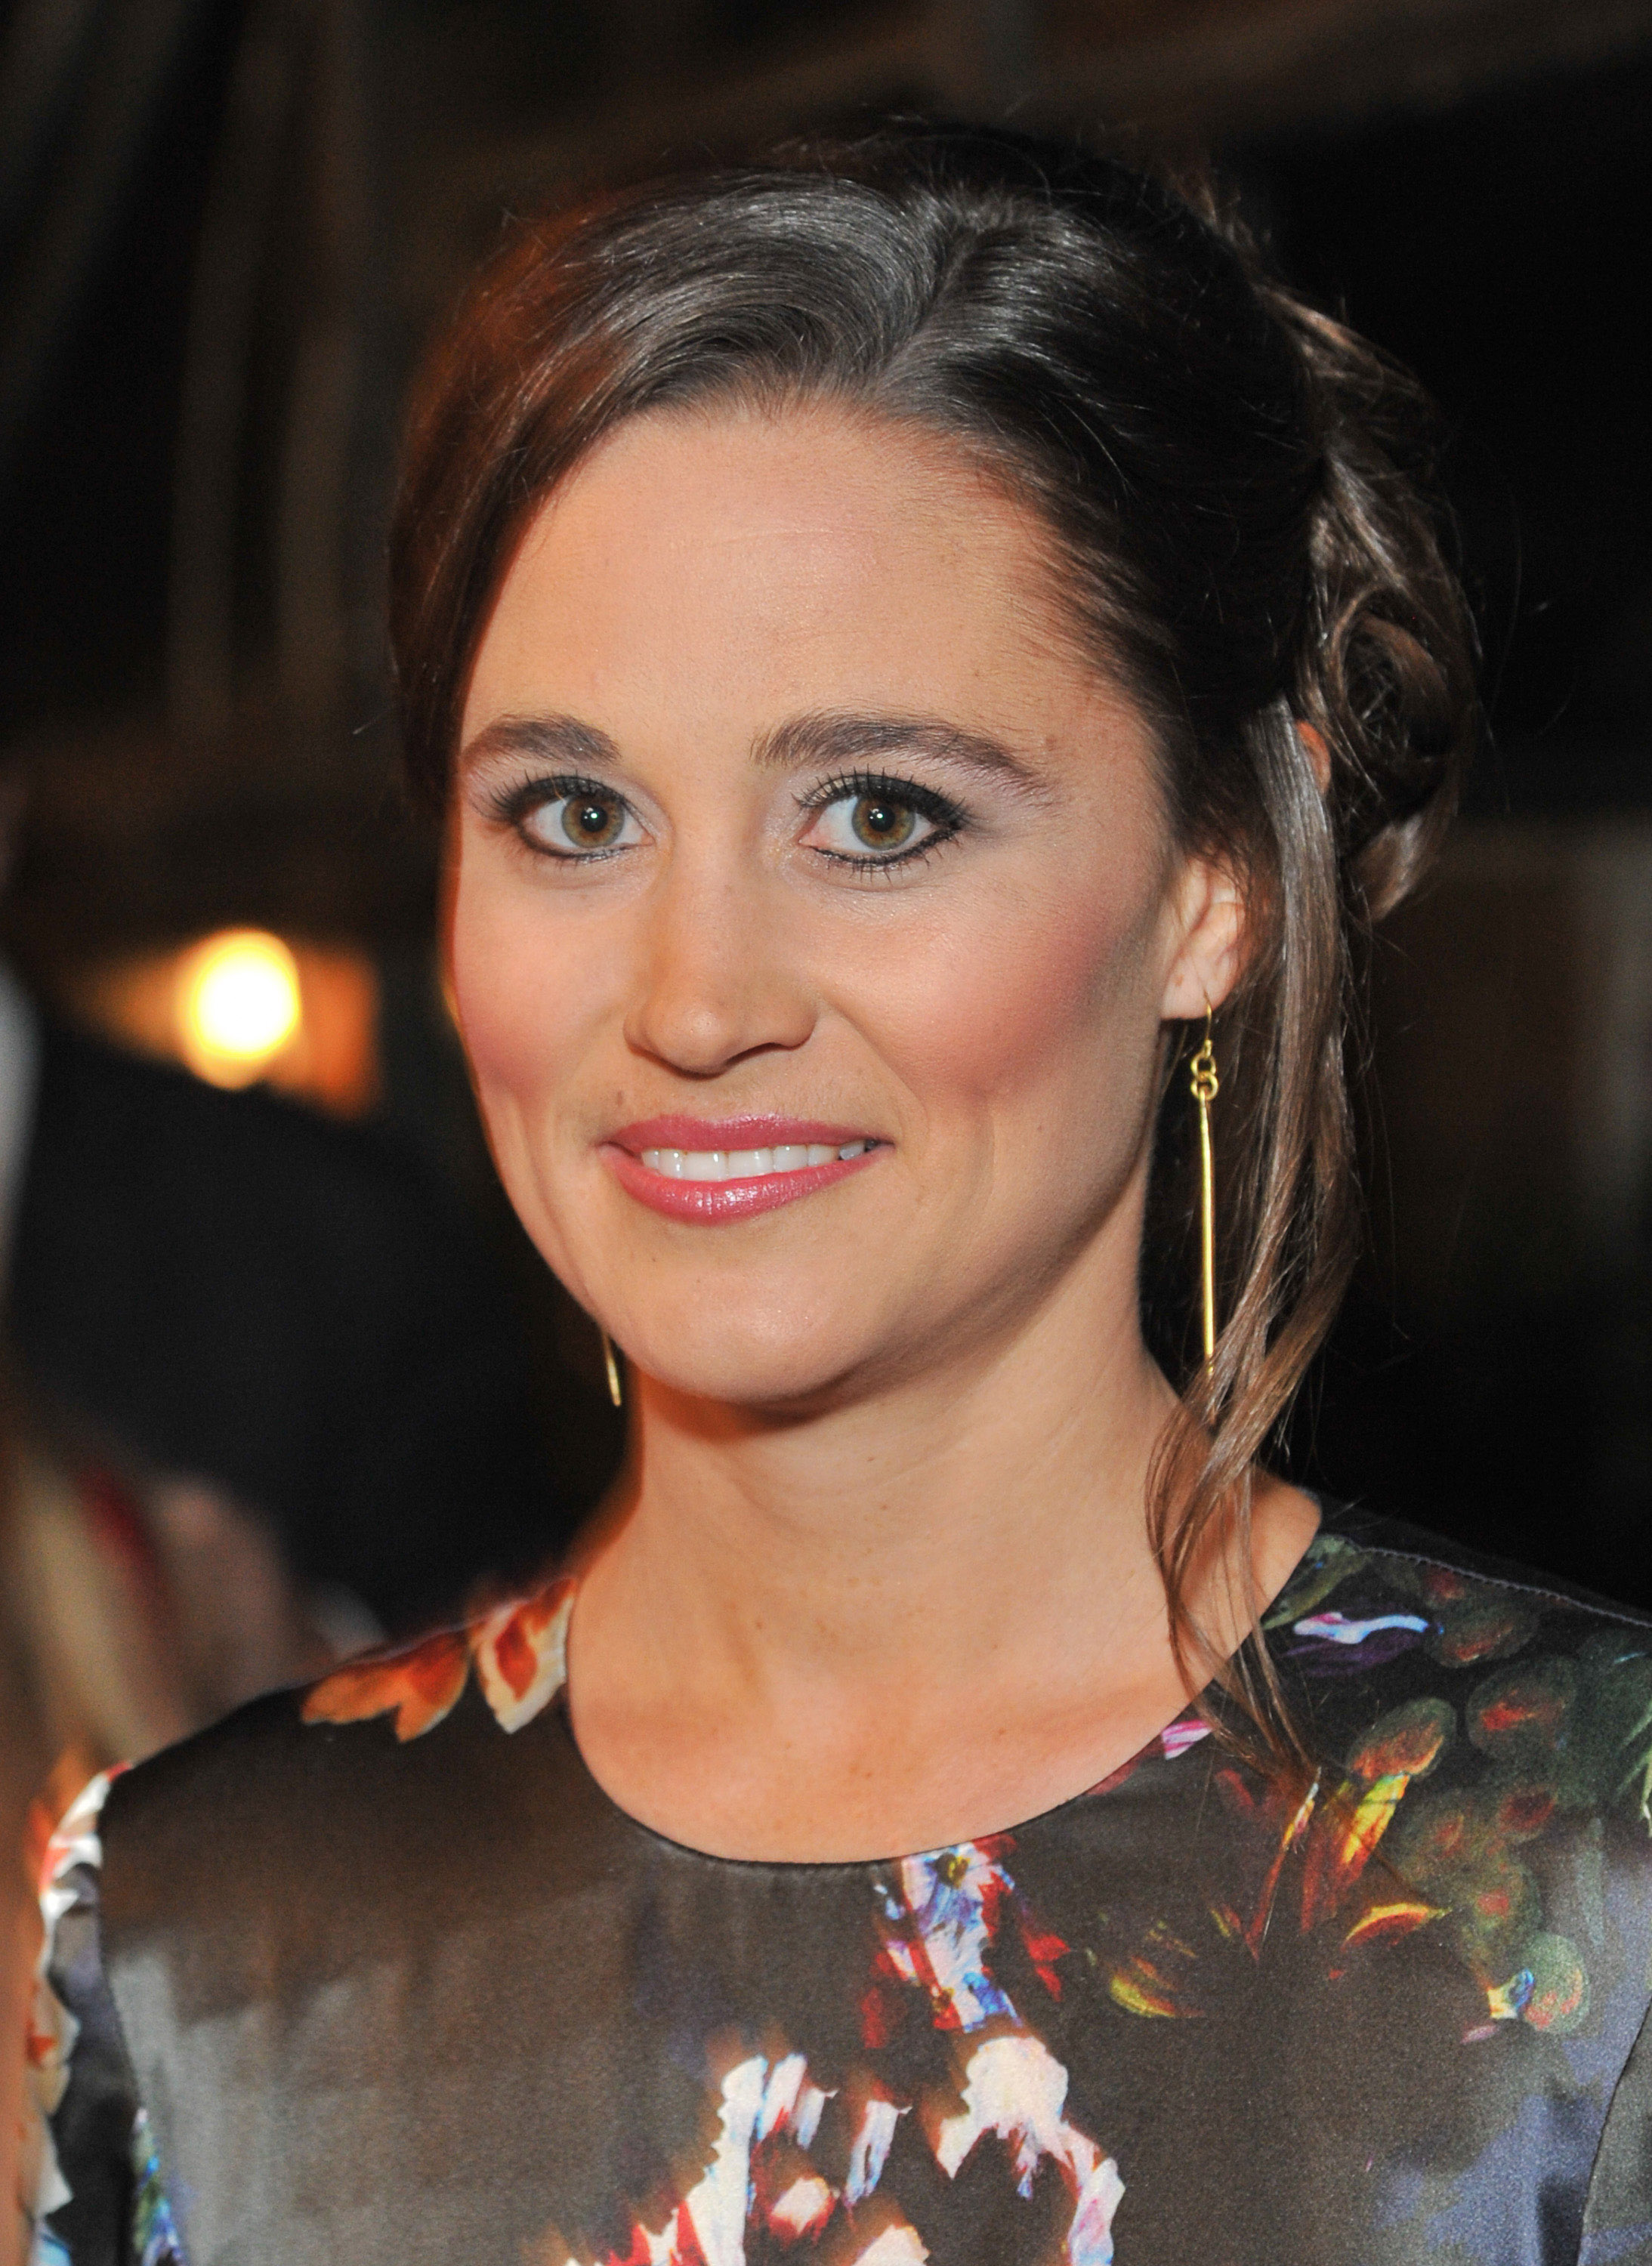 Pippa Middleton at an All Saints charity event in London.